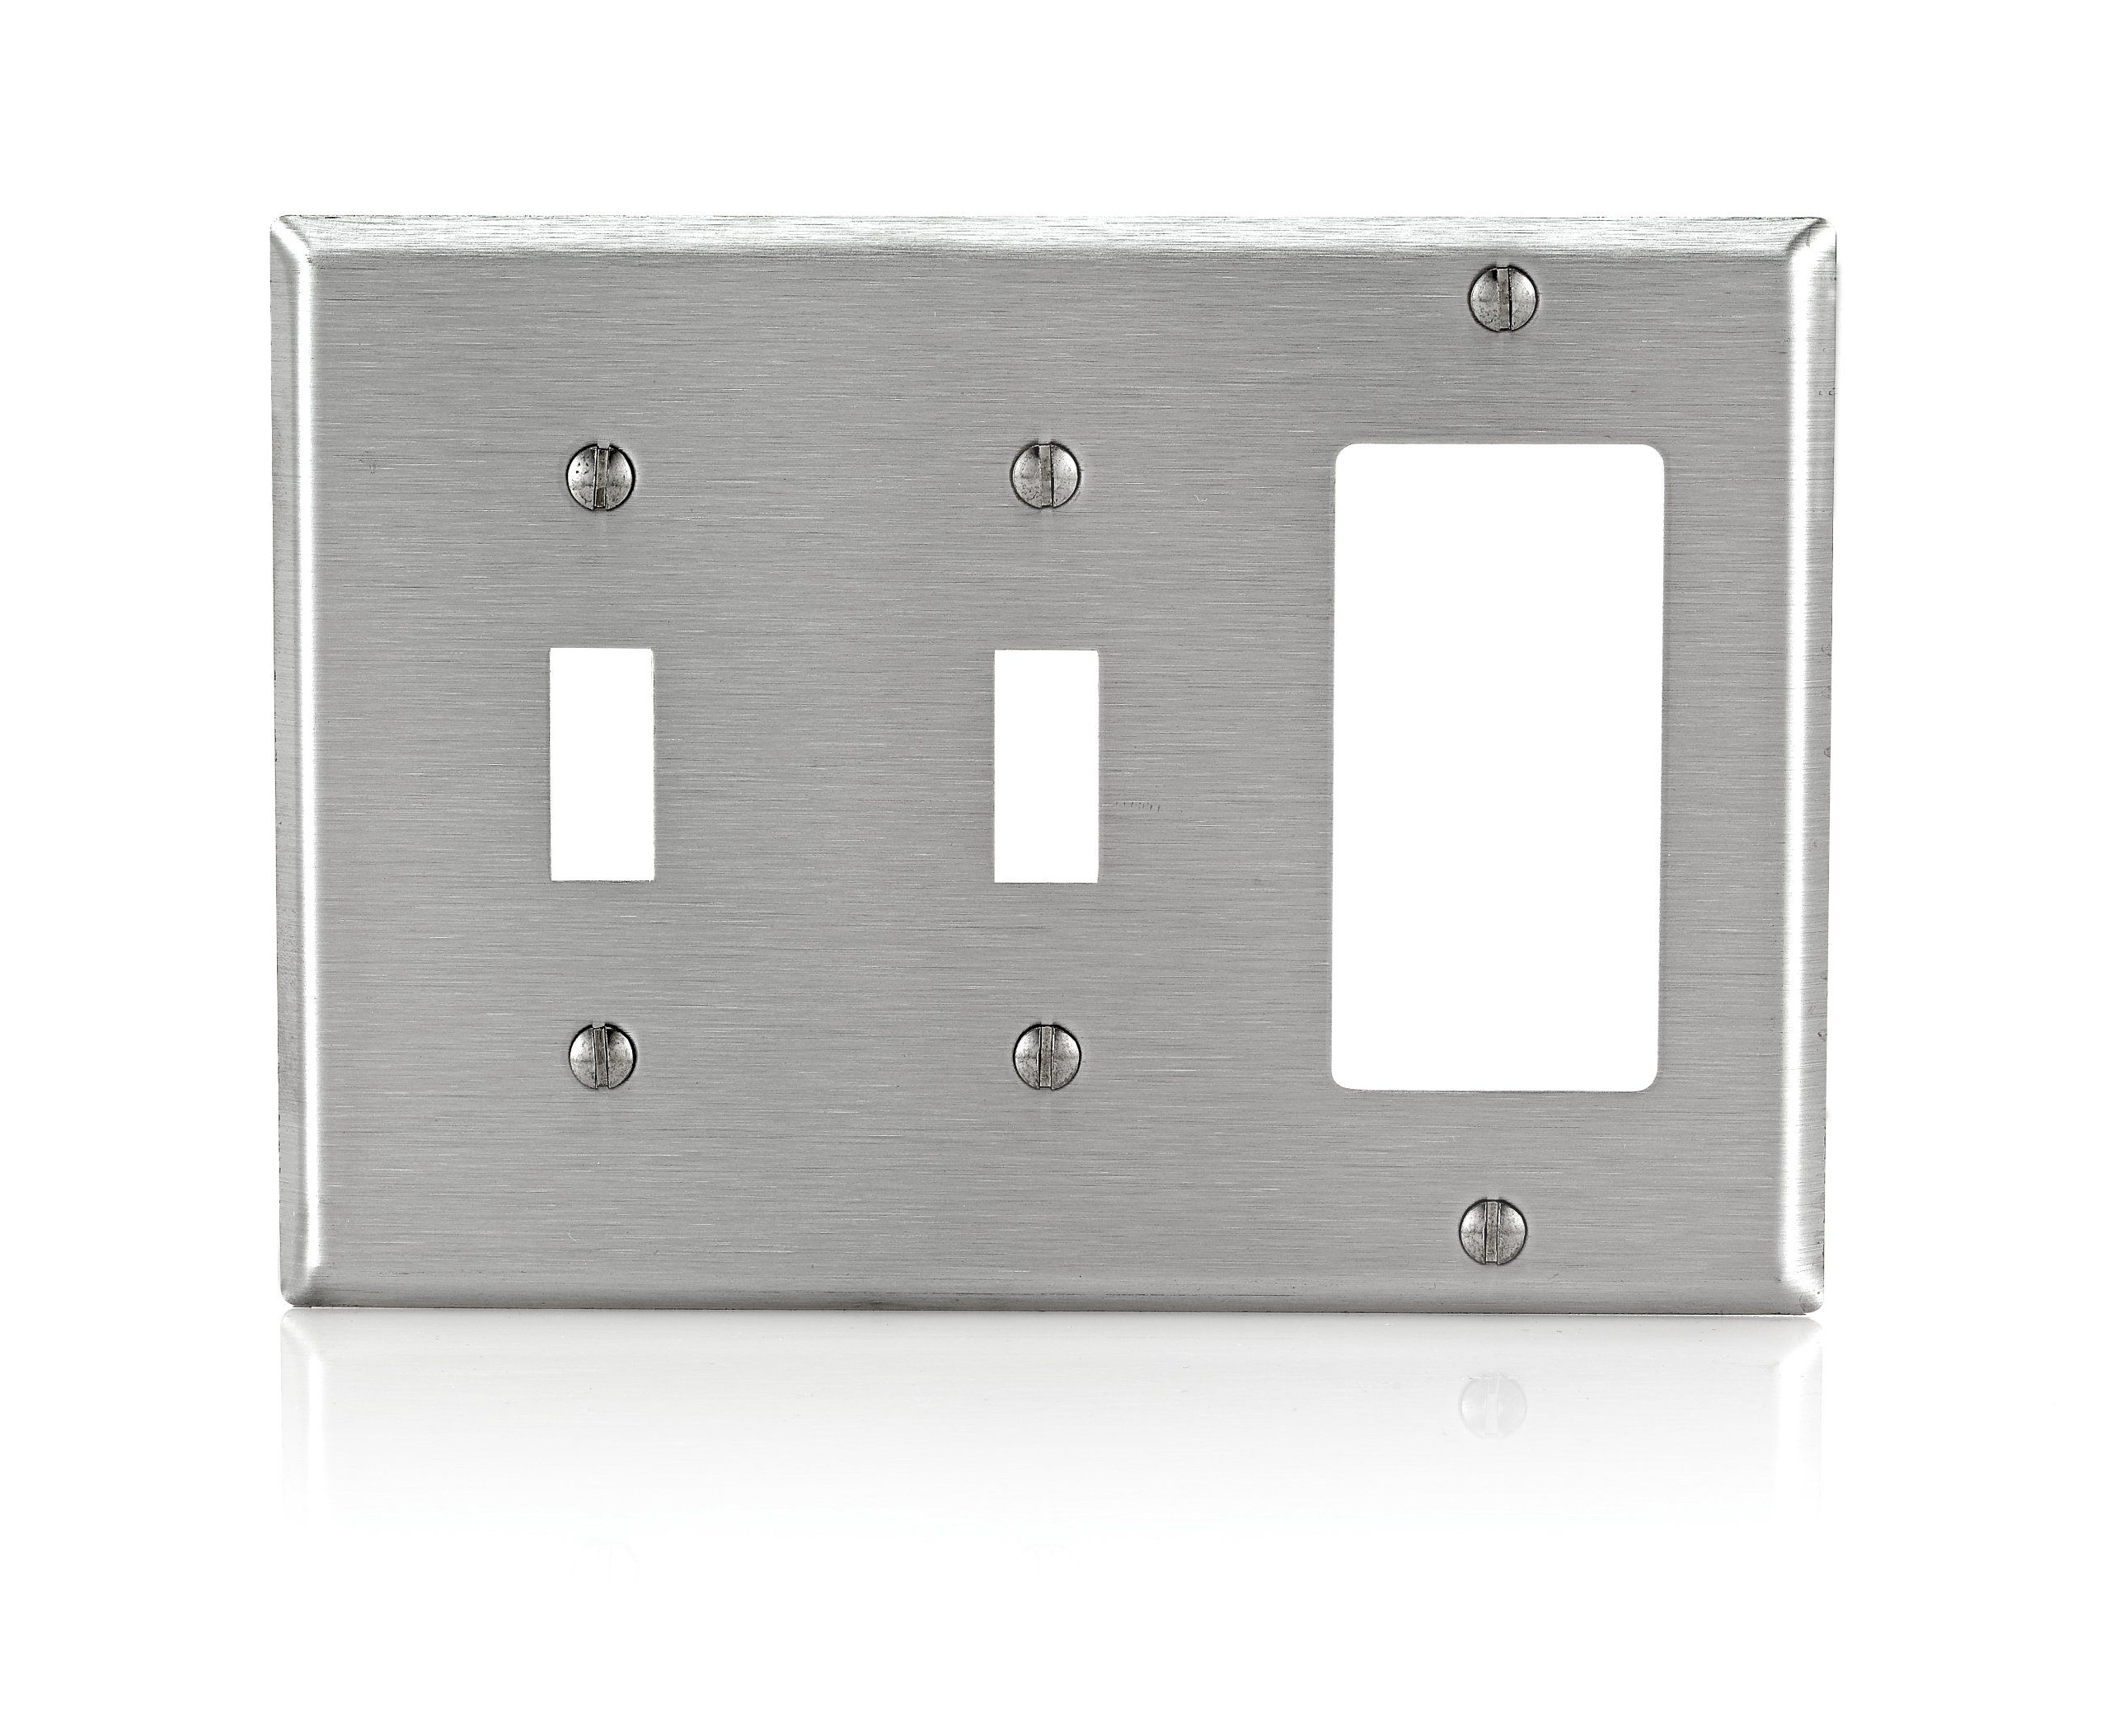 Leviton 84421 40 3 Gang 2 Toggle Decora Gfci Device Combination Wallplate Stainless Steel Read More Reviews Of In 2020 Plates On Wall Leviton Outdoor Weatherproof